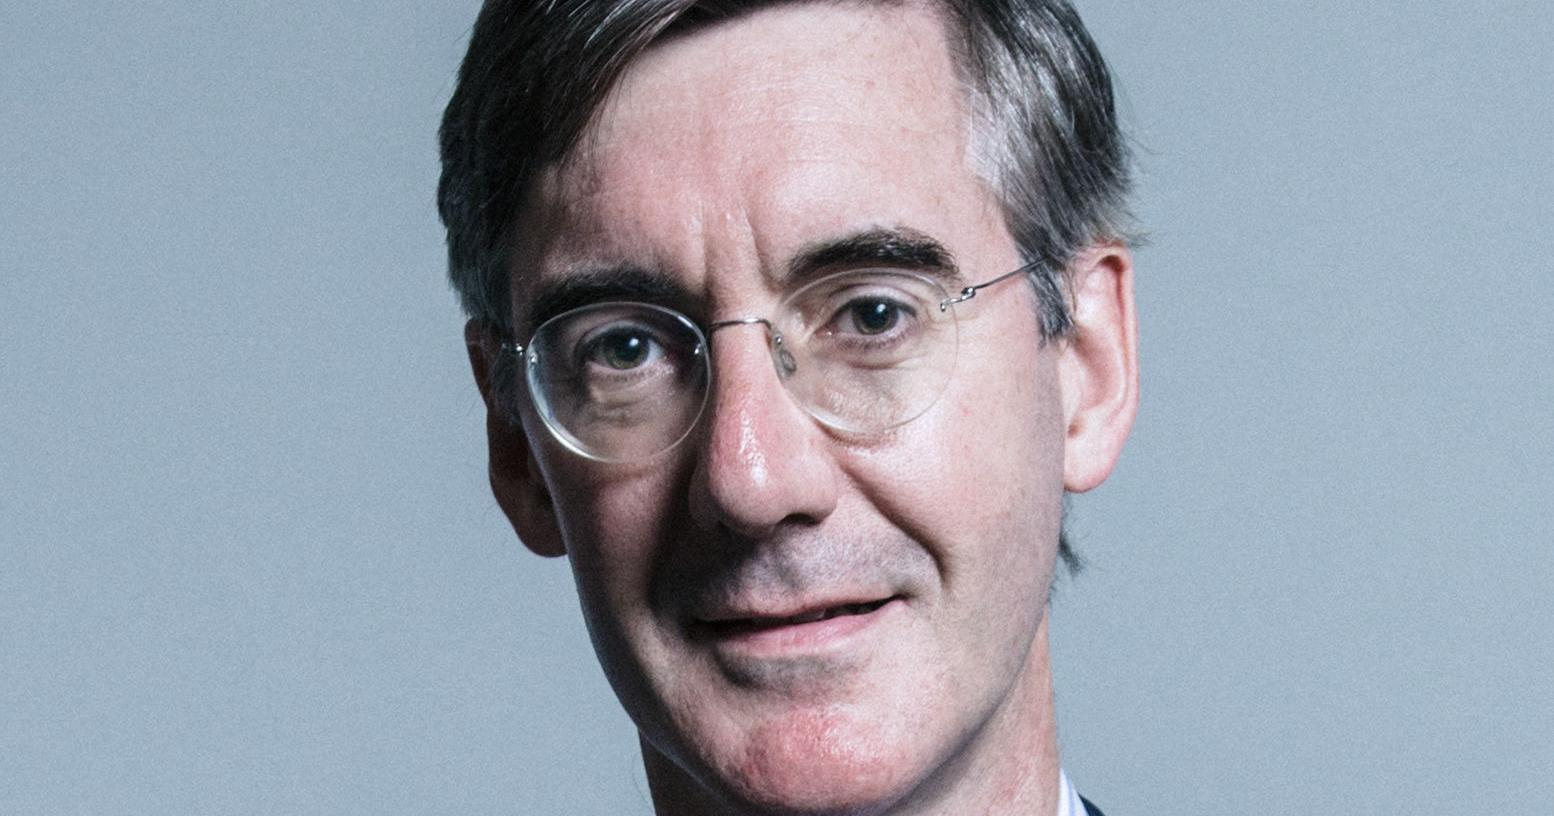 Exclusive: Jacob Rees-Mogg is coming to speak at Bristol ...